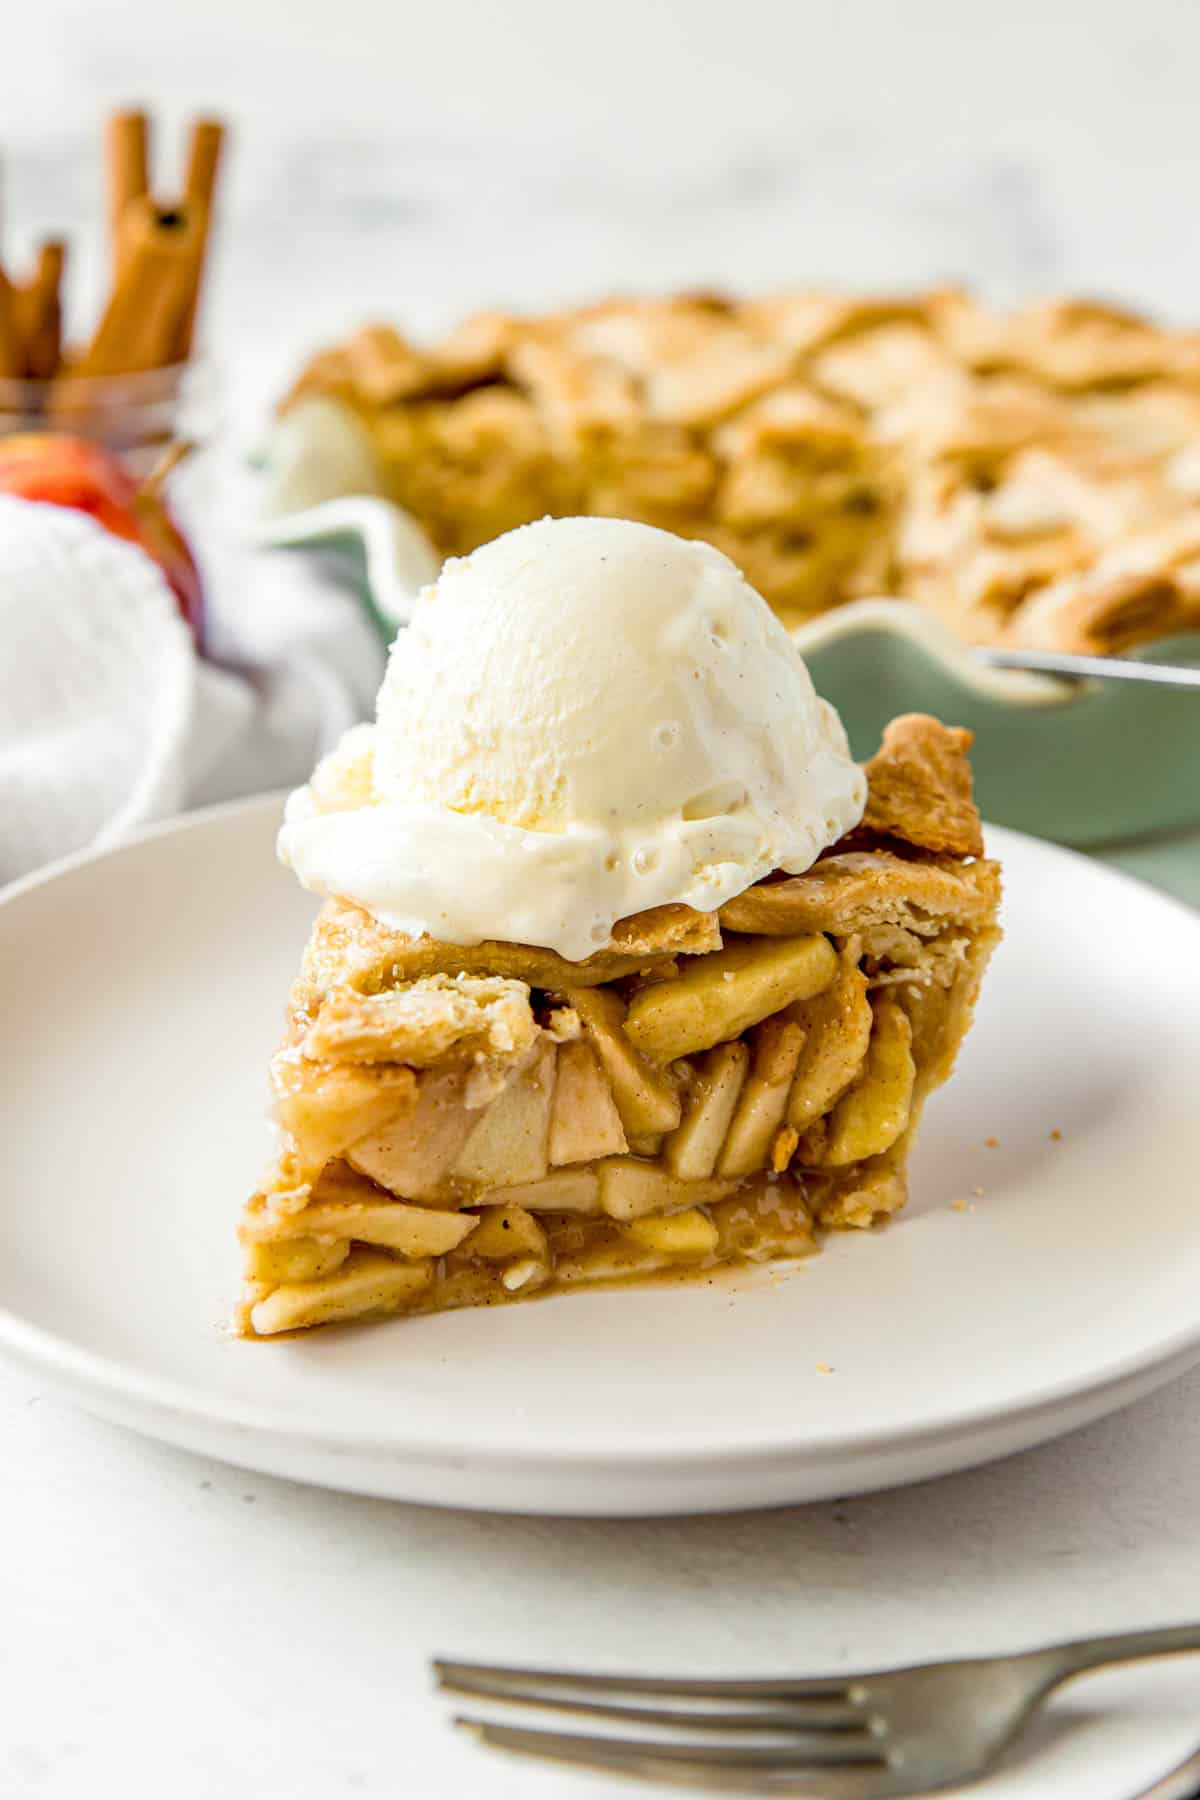 slice of apple pie with a scoop of ice cream on top